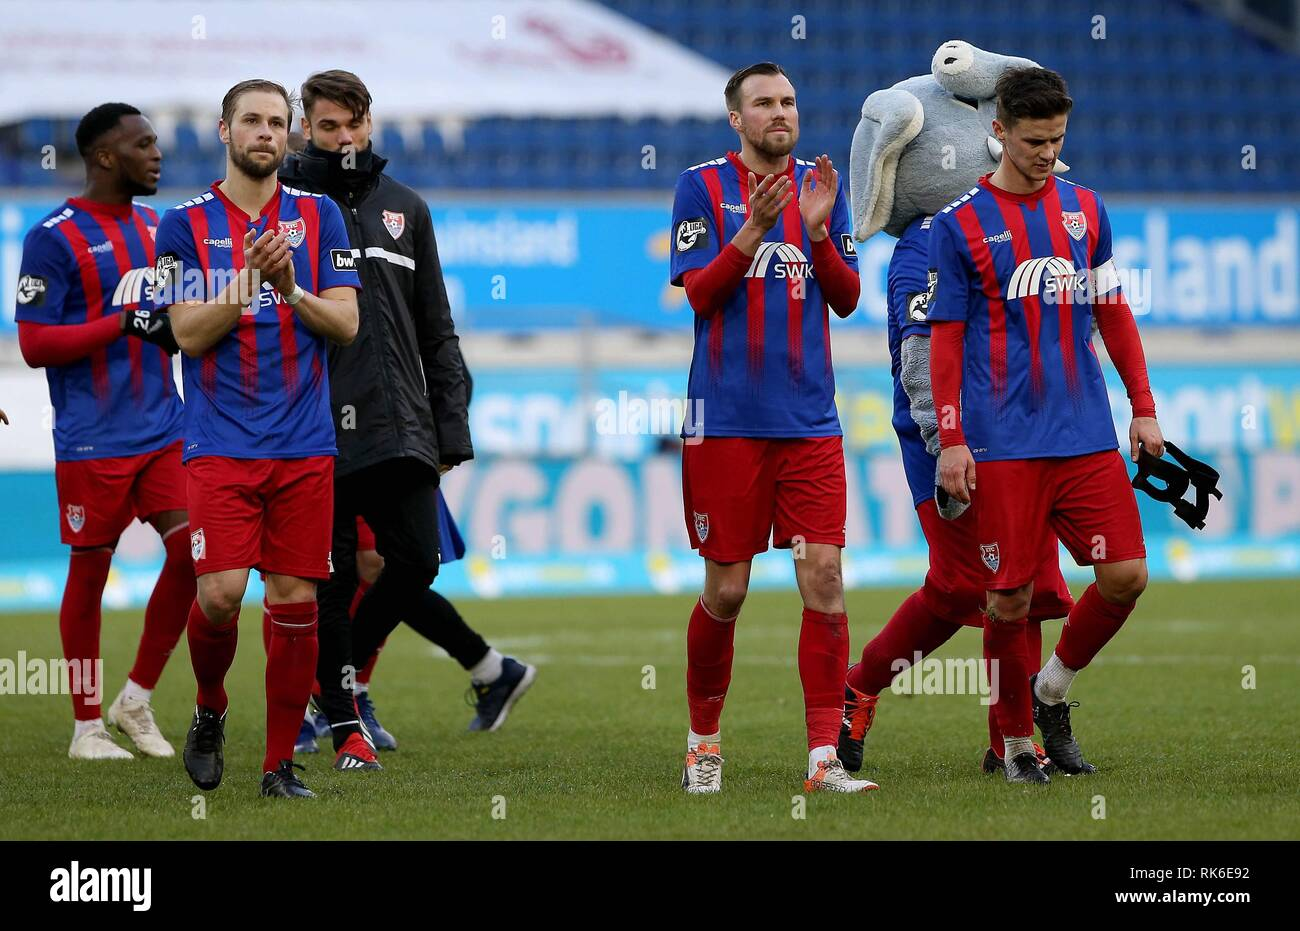 Duisburg, Deutschland. 09th Feb, 2019. firo: 09.02.2019 Football, 3. Bundesliga, season 2018/2019 KFC Uerdingen 05 - TSV 1860 Munich Kevin Grovukreutz (# 6, KFC Uerdingen 05) and Maximilian Beister (# 9, KFC Uerdingen 05) thank the fans. | usage worldwide Credit: dpa/Alamy Live News - Stock Image